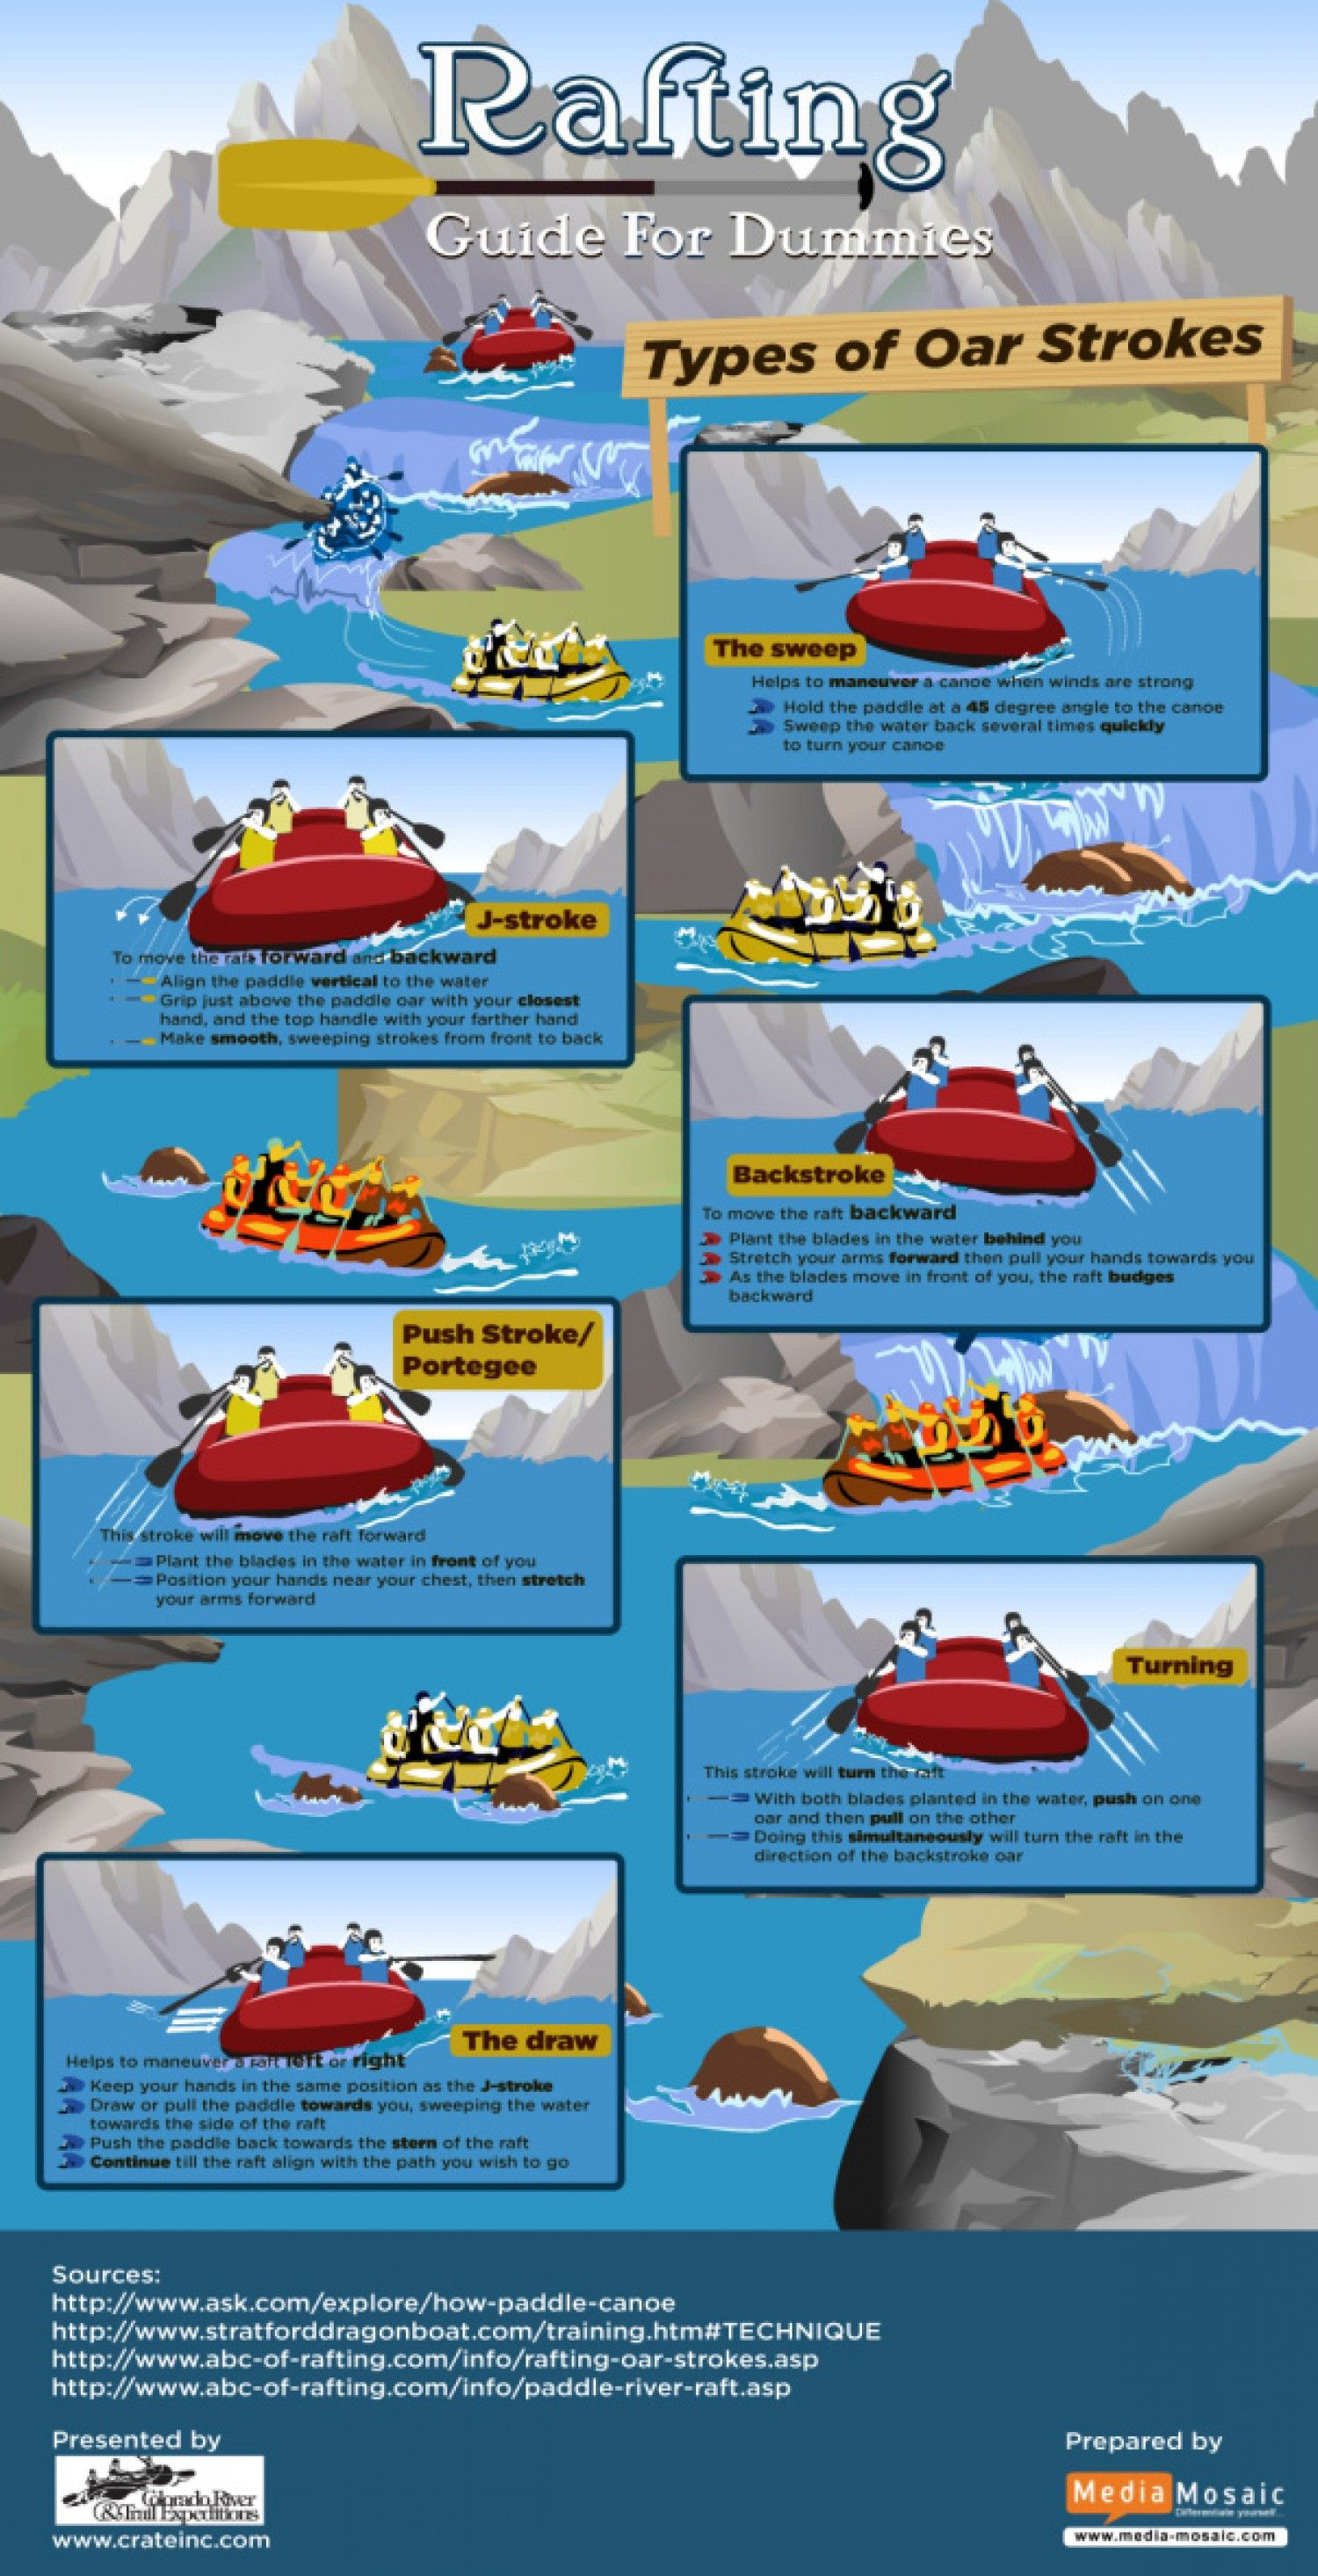 Rafting guide for dummies Infographic Outdoor Sports